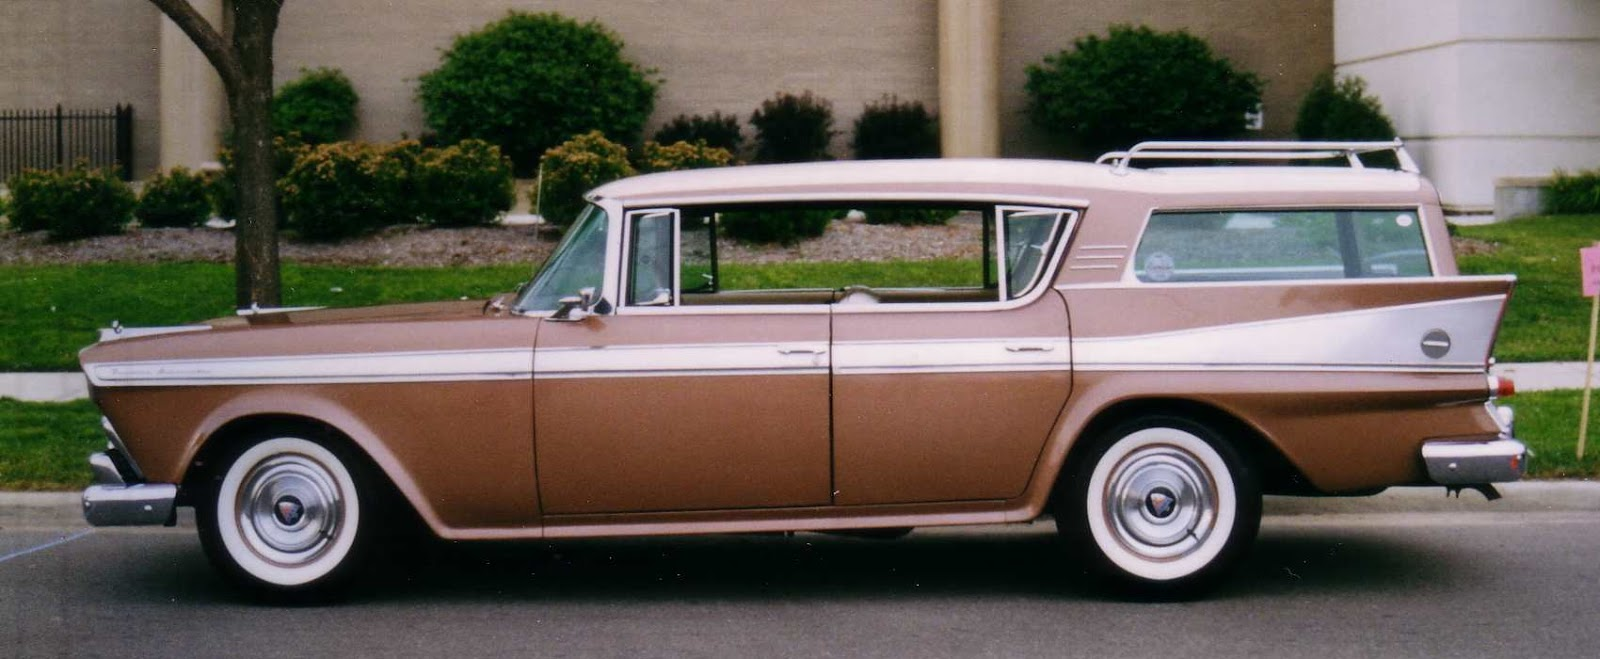 Here's a List of 10 Ugliest Cars From the 1950s ~ vintage ...